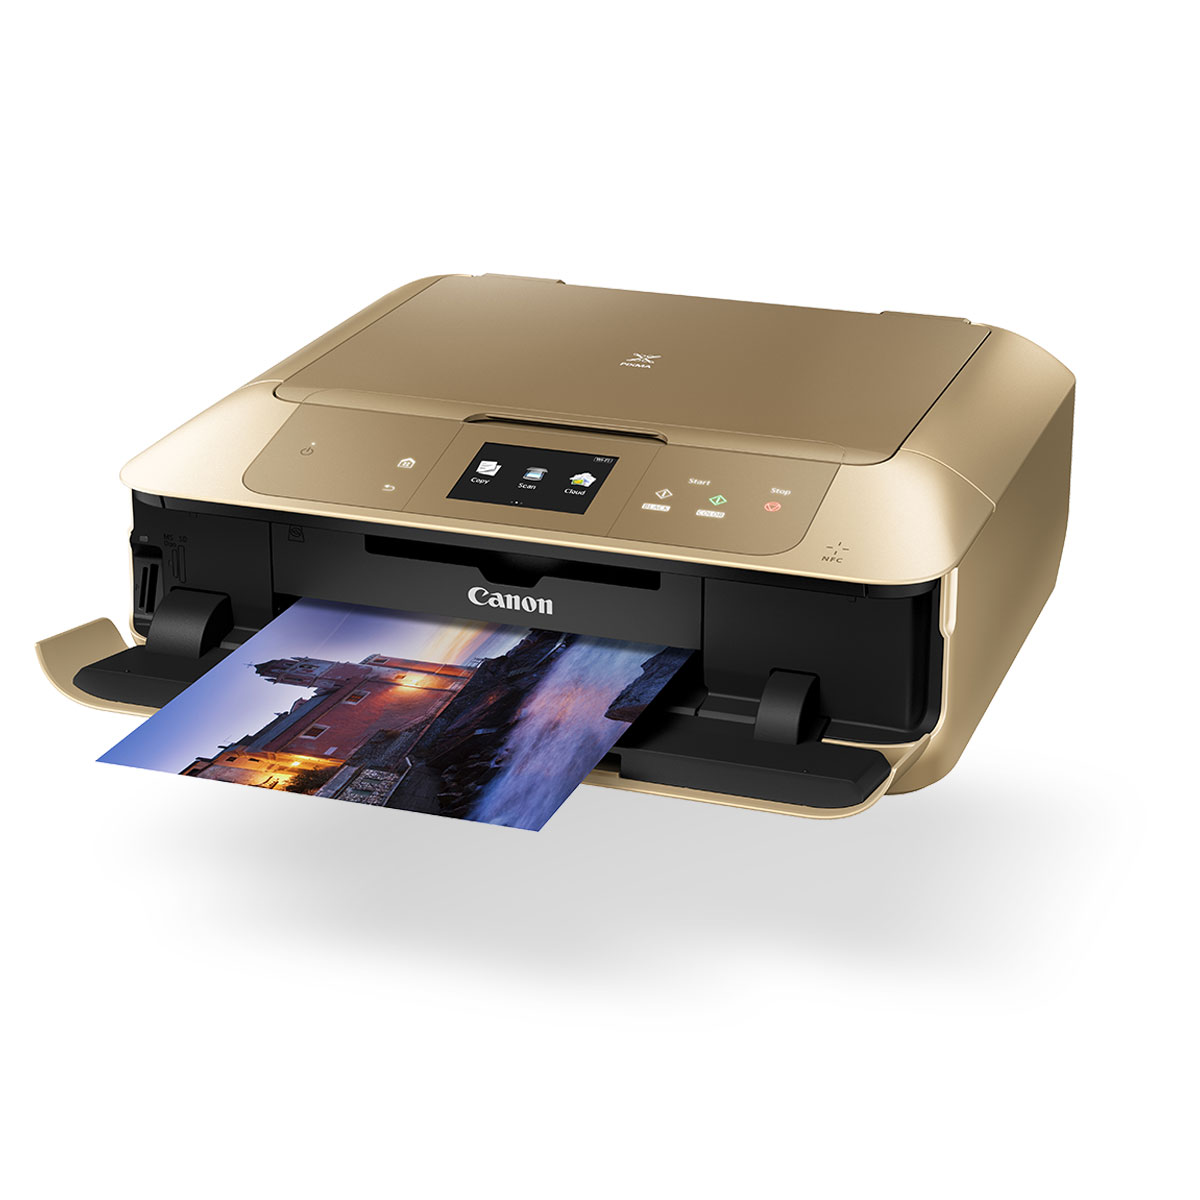 Gold PIXMA printer with print